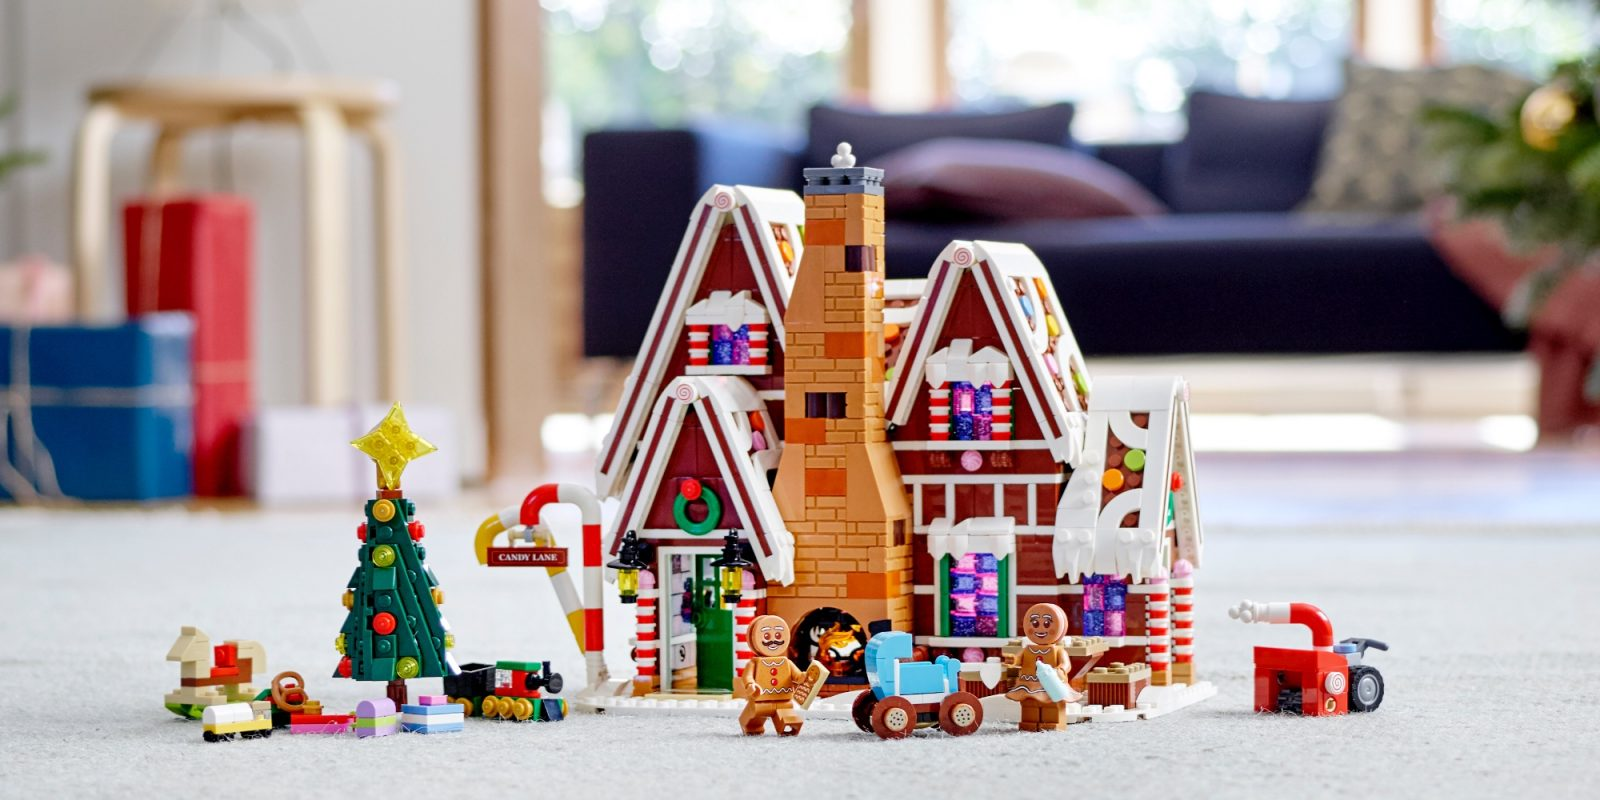 LEGO's latest Winter Village kit has you craft a 1,500-piece Gingerbread House